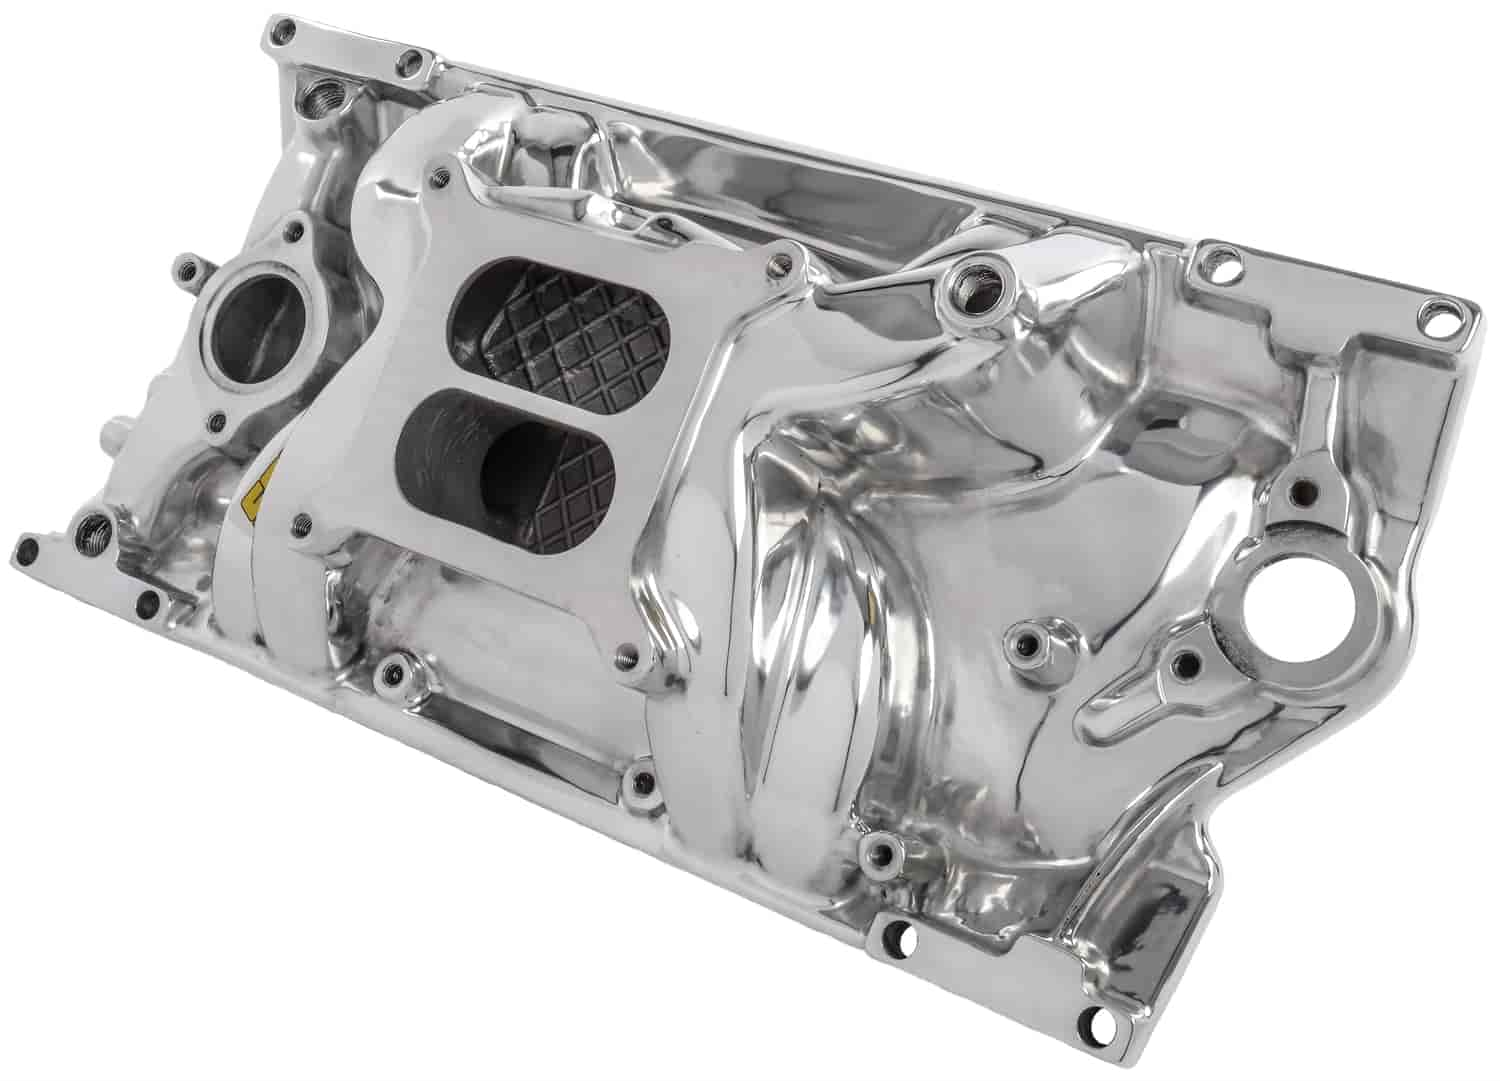 JEGS Intake Manifold for Small Block Chevy with 1996-Up Vortec L31 Cast  Iron Head